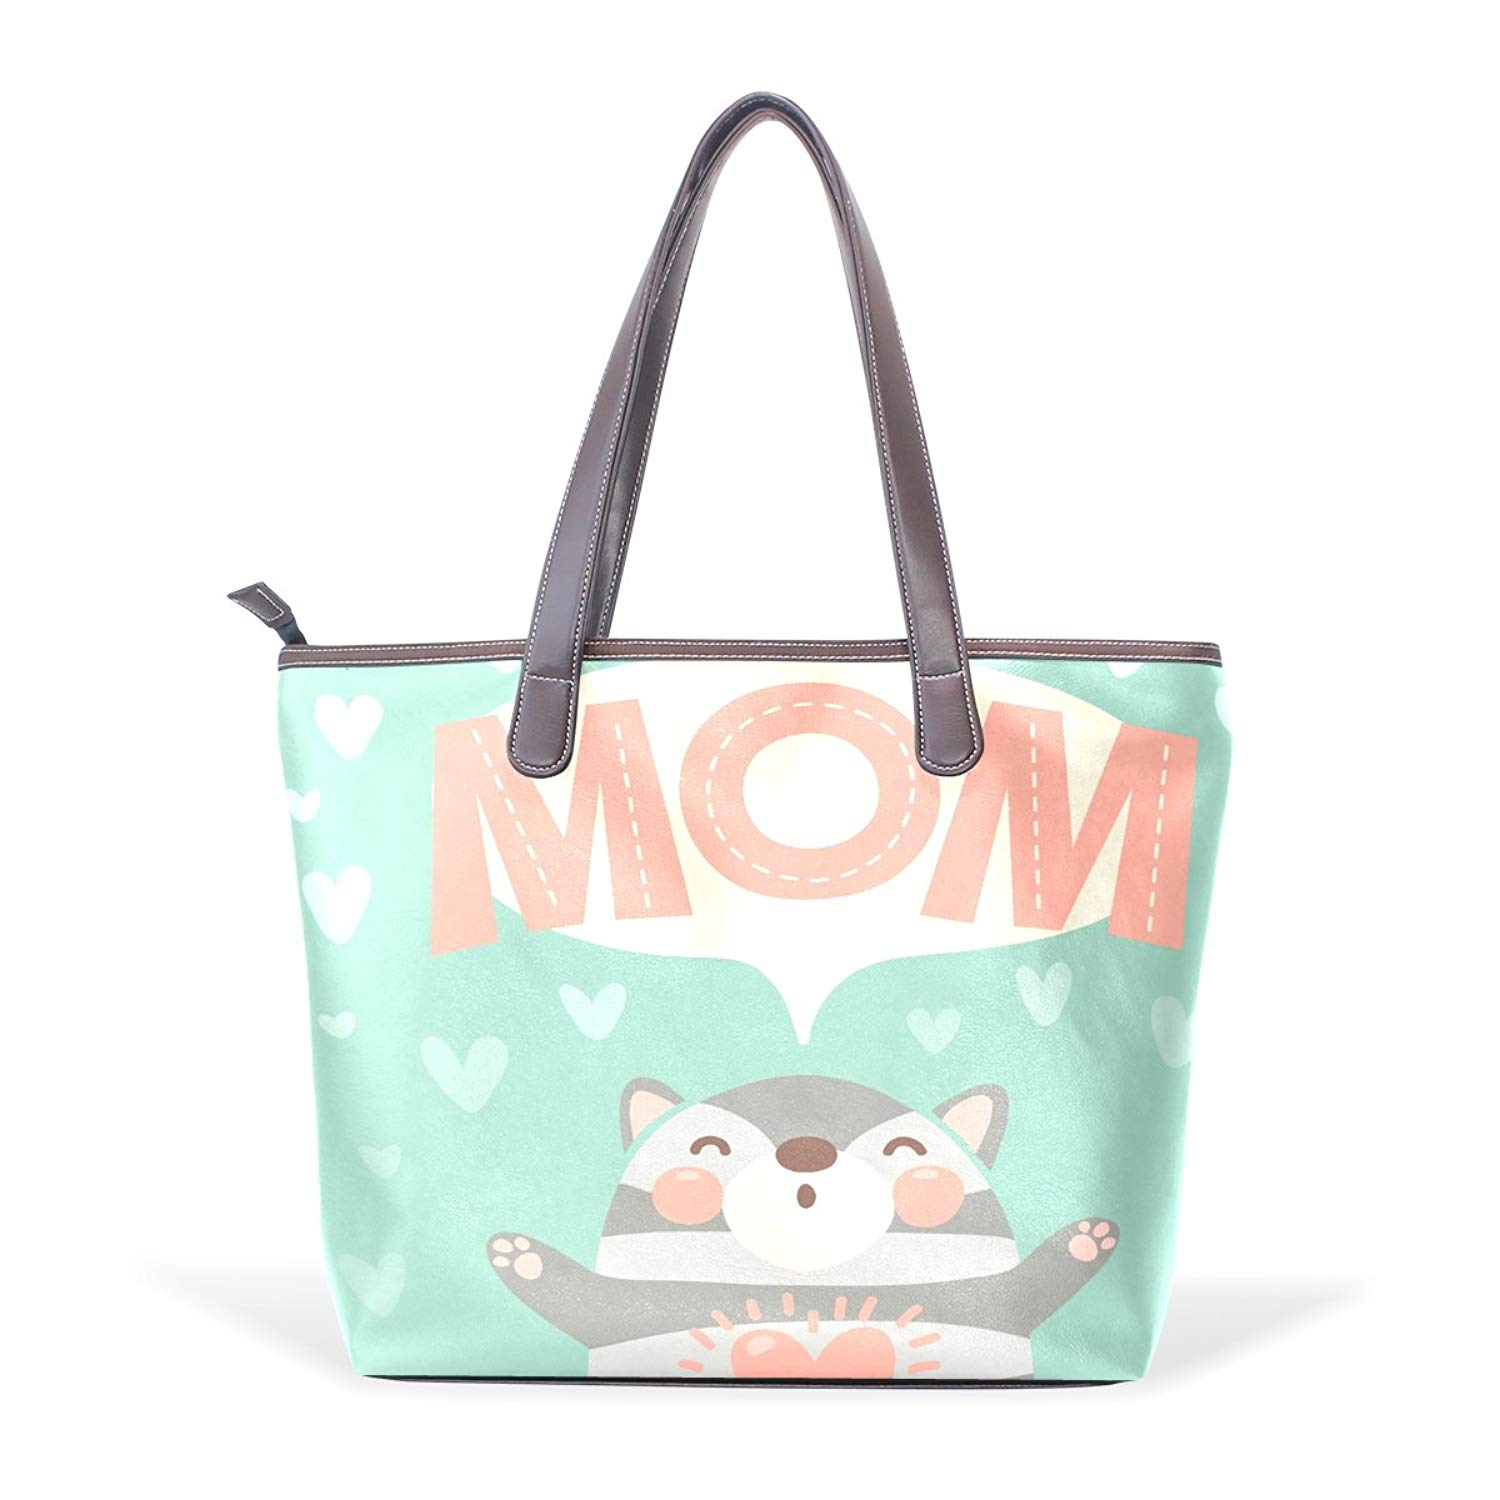 c02c9d990ca8 Cheap Mothers Purse, find Mothers Purse deals on line at Alibaba.com